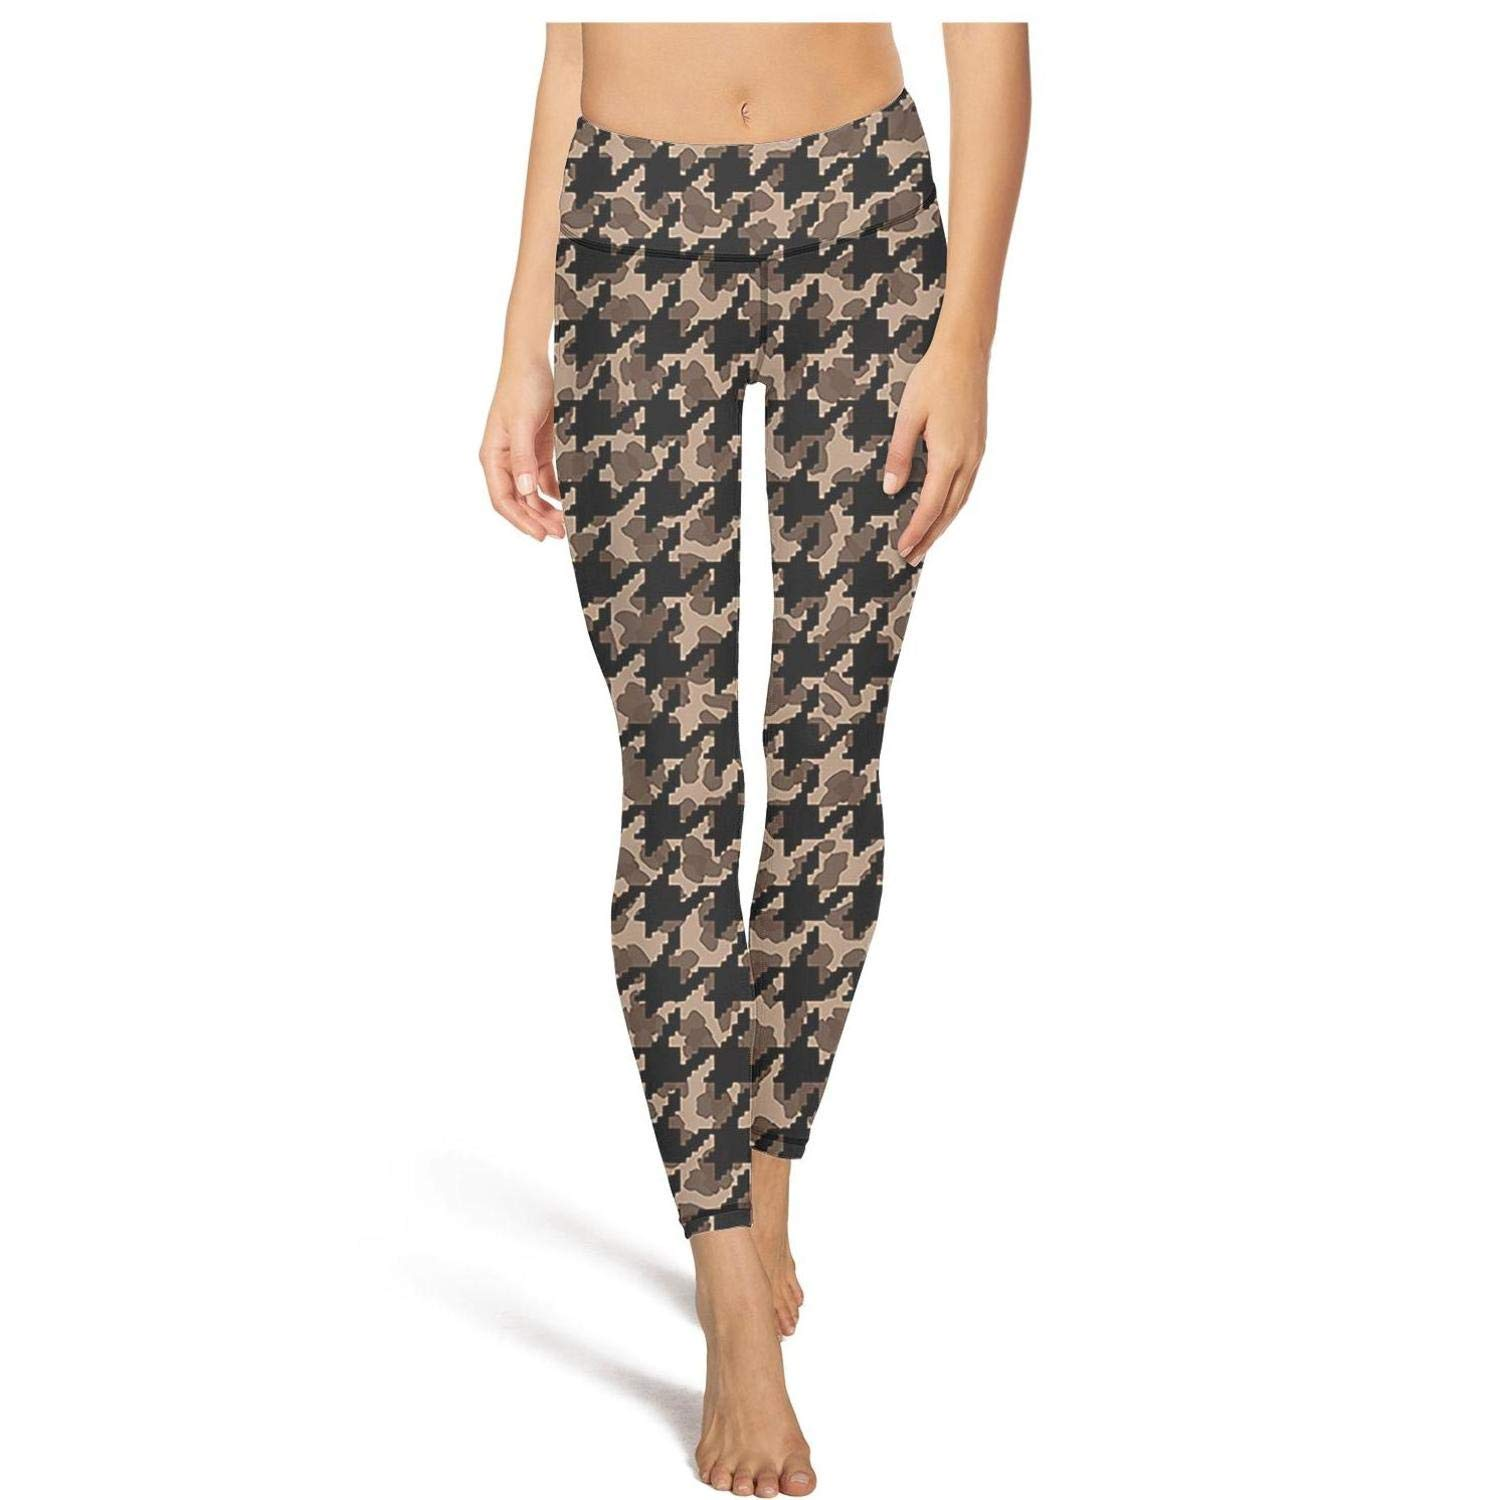 PROGIFToO Womens Workout Running Legging Trendy Hounds Tooth Tiles Checkerboard Tummy Control Yoga Pants Essential